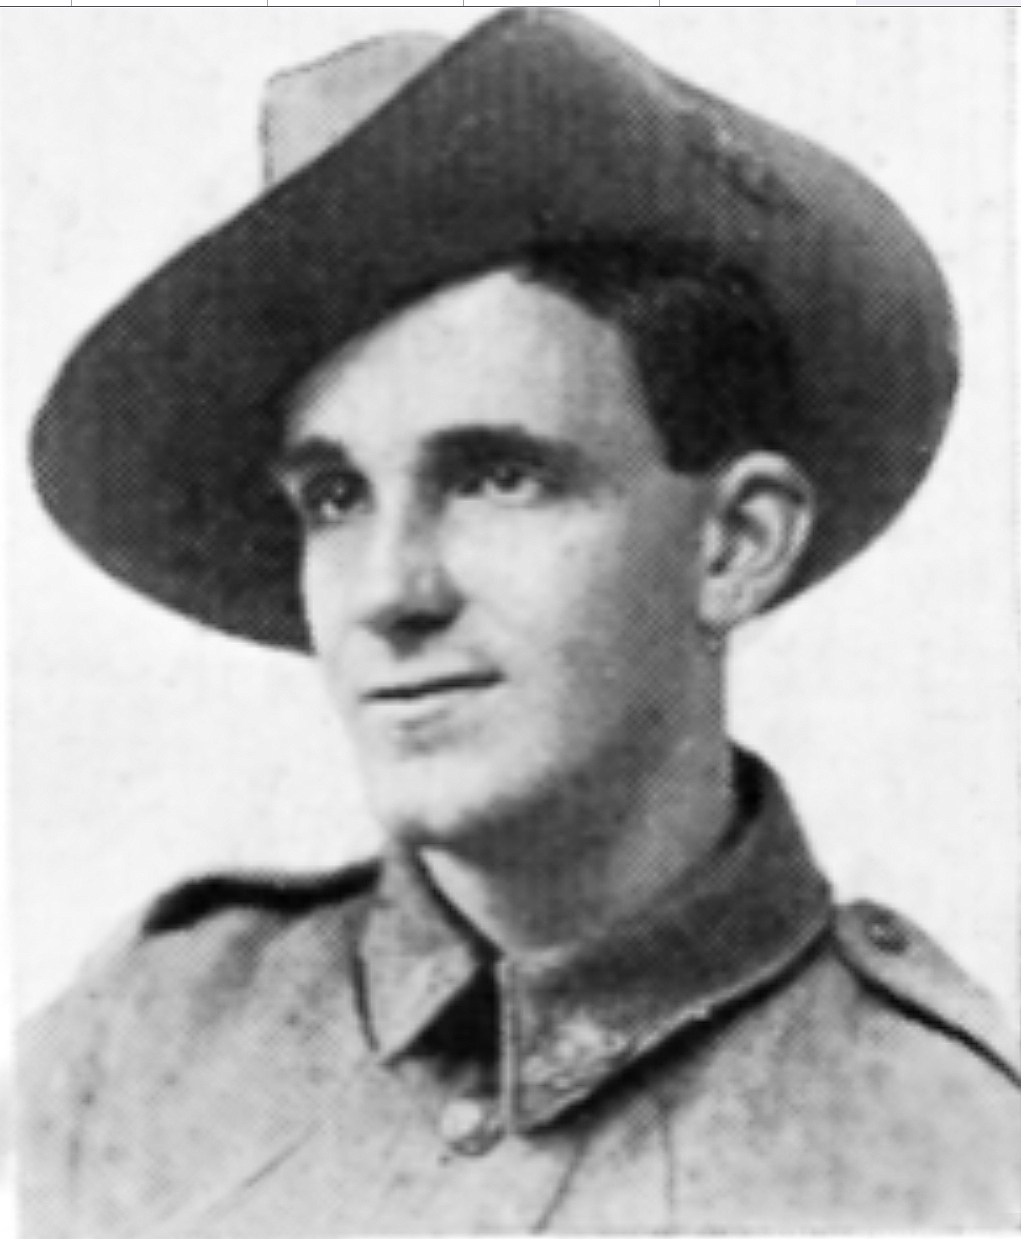 Image of Percy Moffat